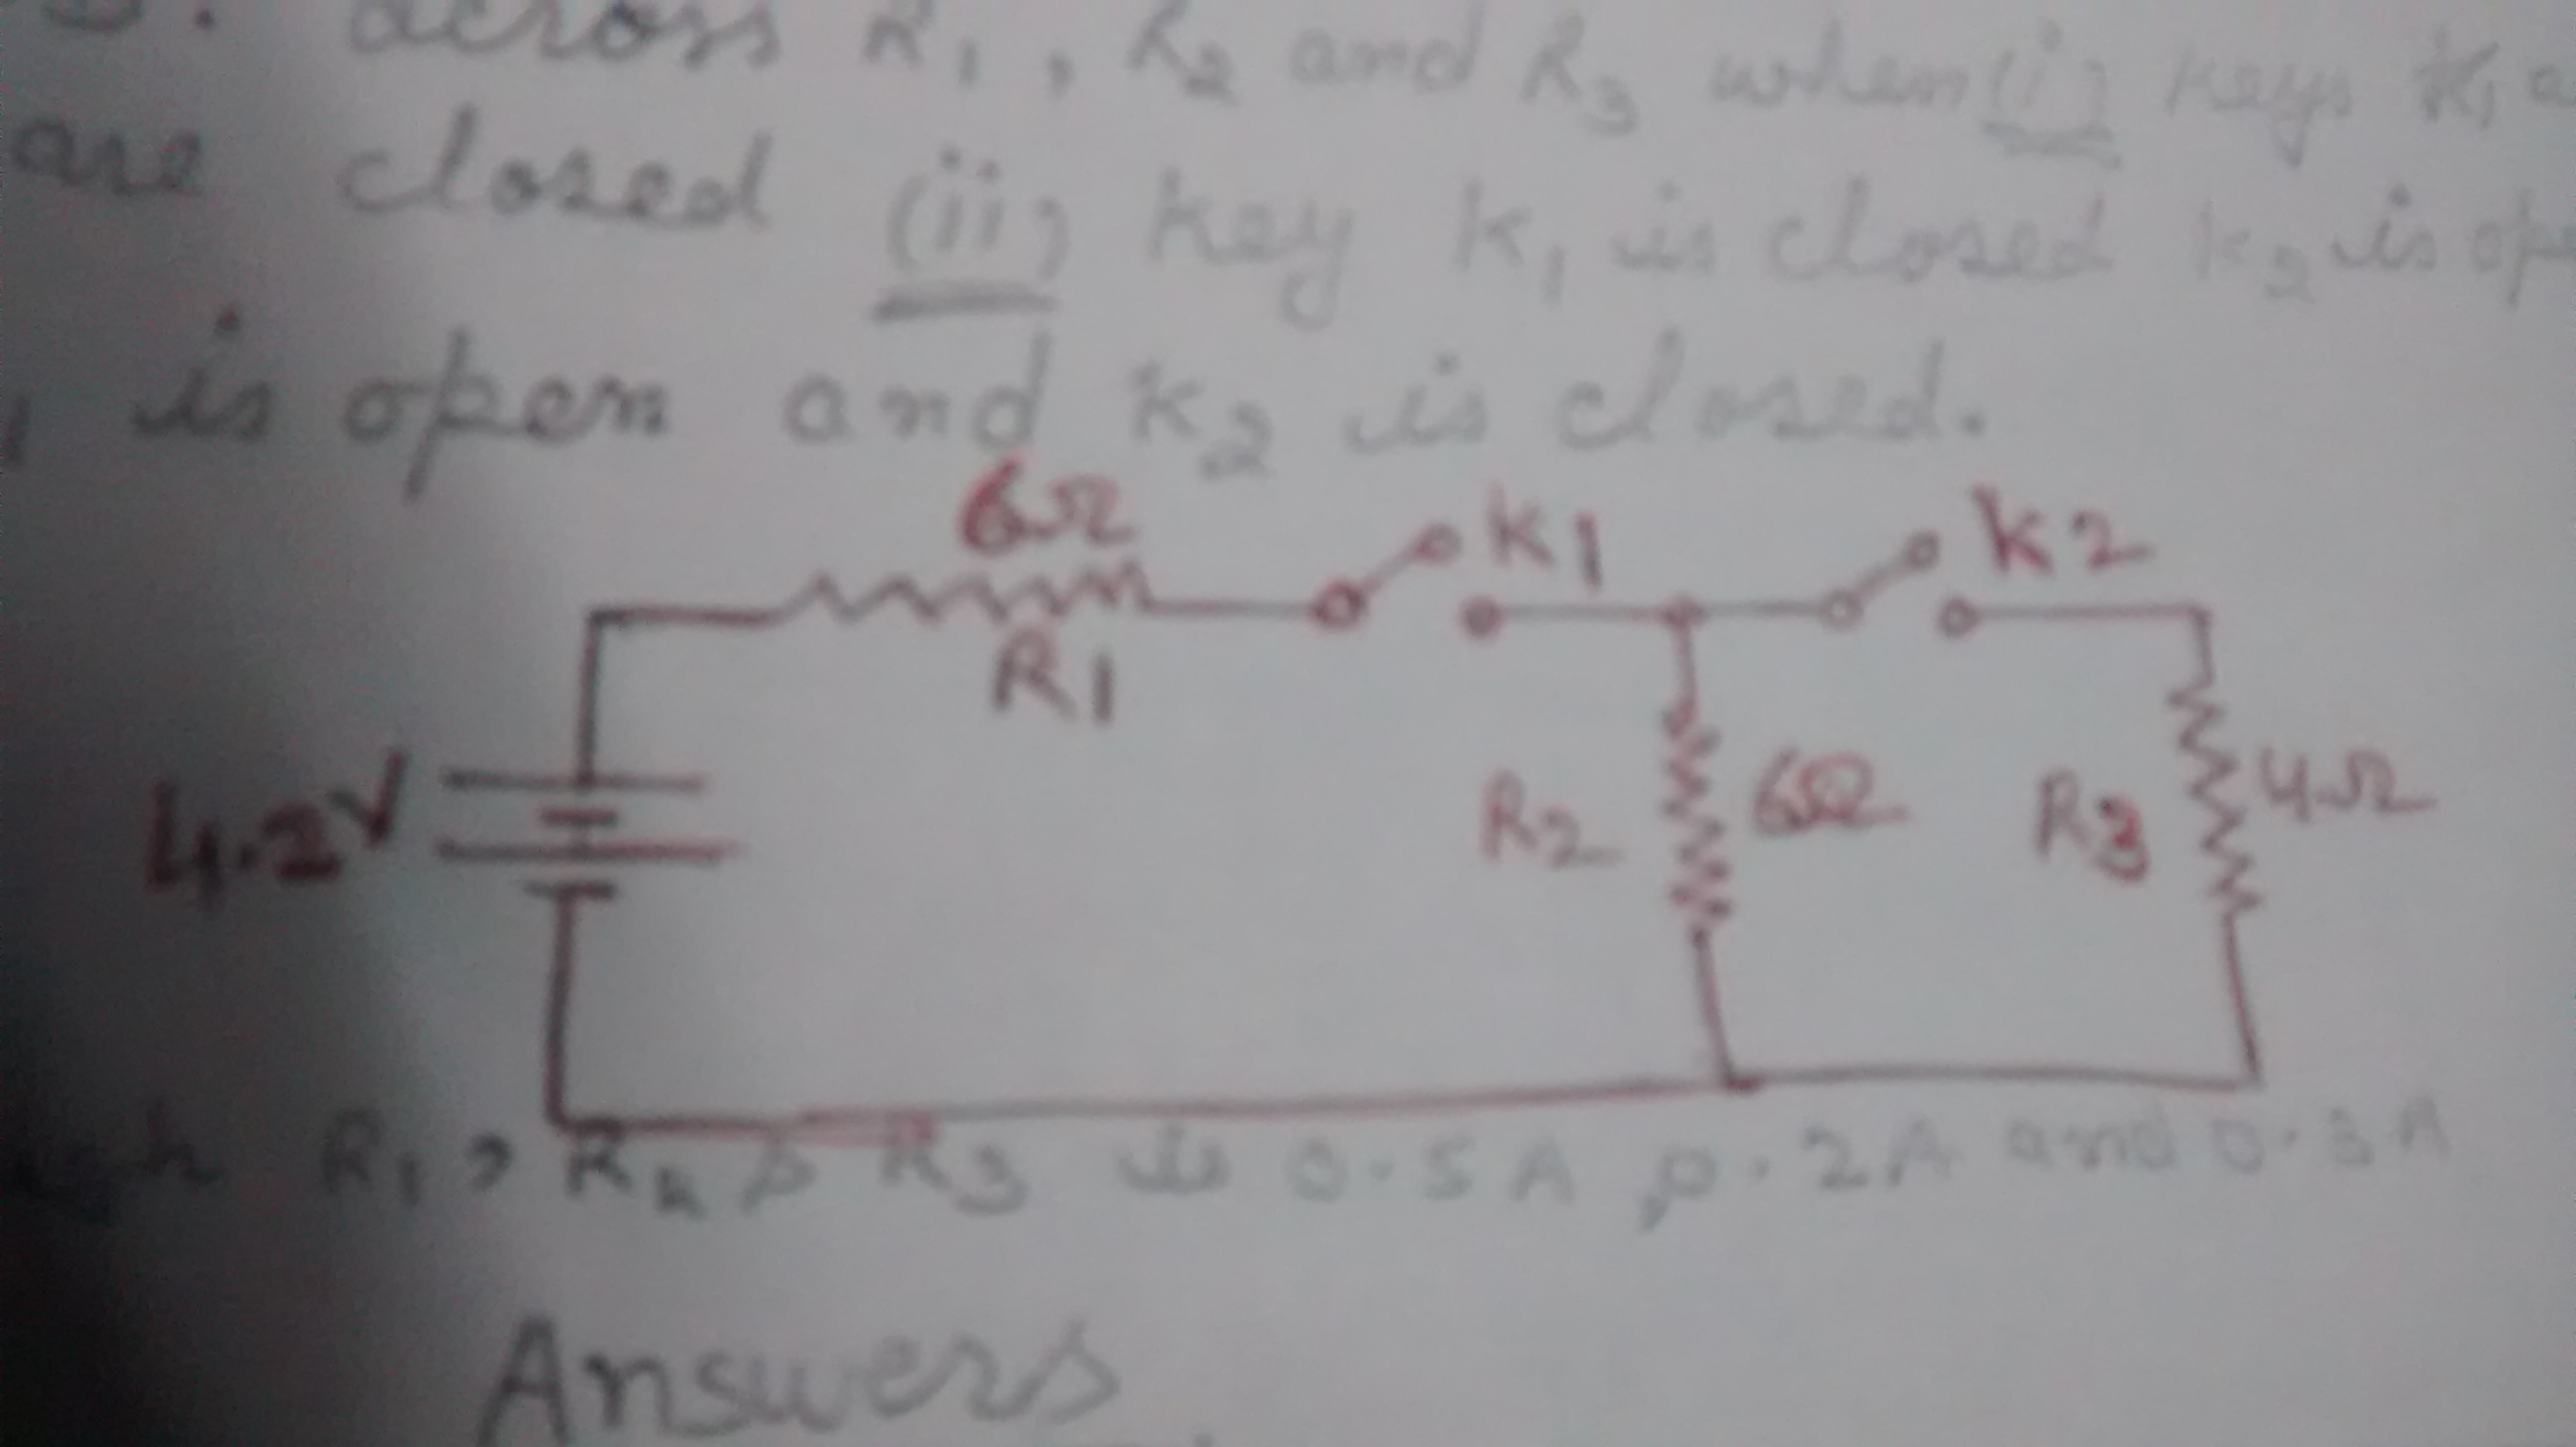 A Circuit Is Set Up As Shown In The Figure Calculate The Current And Pd Across R1 R2 And R3 When